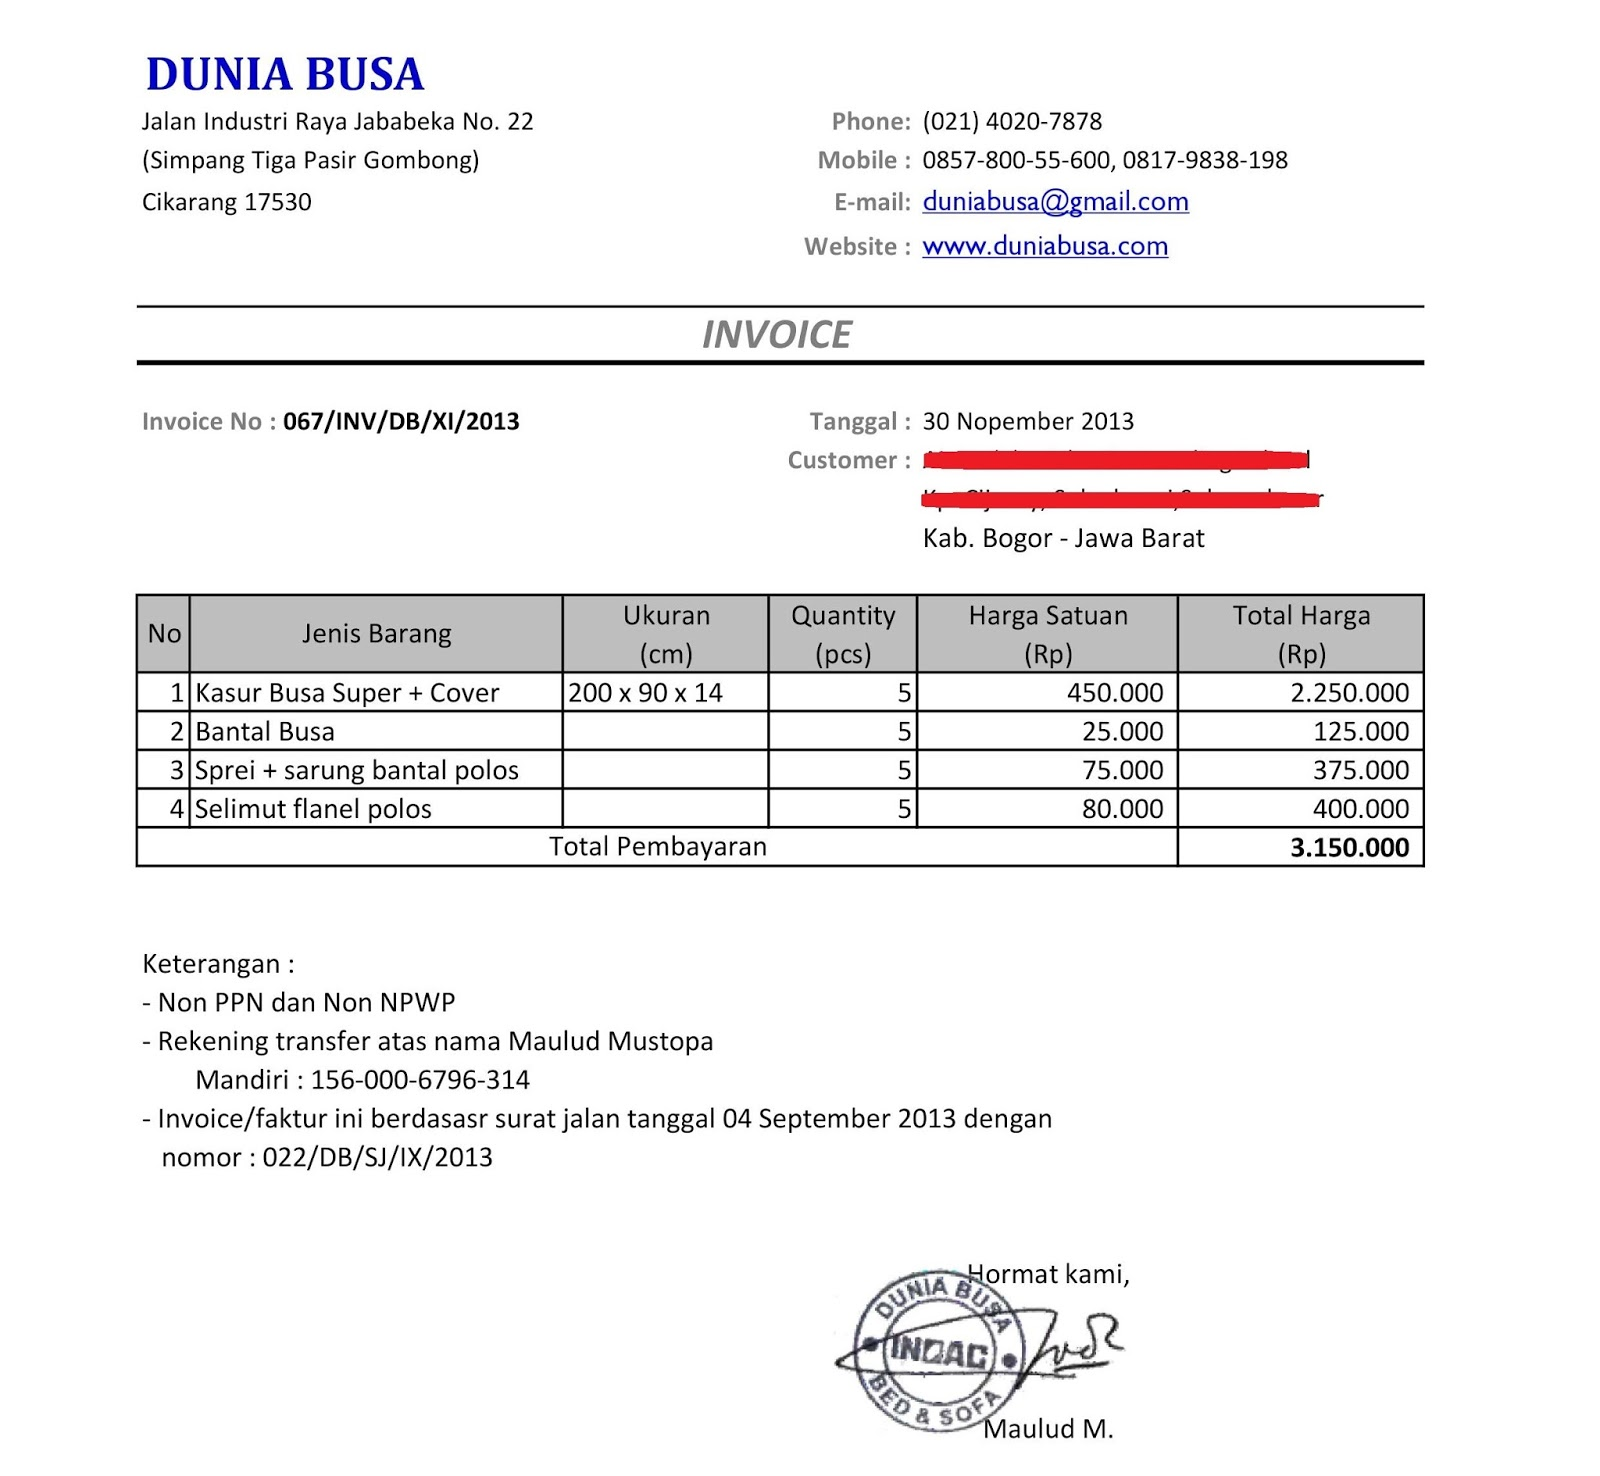 Centralasianshepherdus  Surprising Free Invoice Online  Create Invoice Online  Invoice Template  With Handsome Contoh Format Invoice Atau Surat Tagihan  Brankas Arsip  Free Invoice Online With Attractive Invoice Price Honda Accord Also Invoice Templates For Pages In Addition Print Invoice Online And Invoice Blank Form As Well As Best App For Invoices Additionally Find Out Invoice Price Of Car From Sklepco With Centralasianshepherdus  Handsome Free Invoice Online  Create Invoice Online  Invoice Template  With Attractive Contoh Format Invoice Atau Surat Tagihan  Brankas Arsip  Free Invoice Online And Surprising Invoice Price Honda Accord Also Invoice Templates For Pages In Addition Print Invoice Online From Sklepco